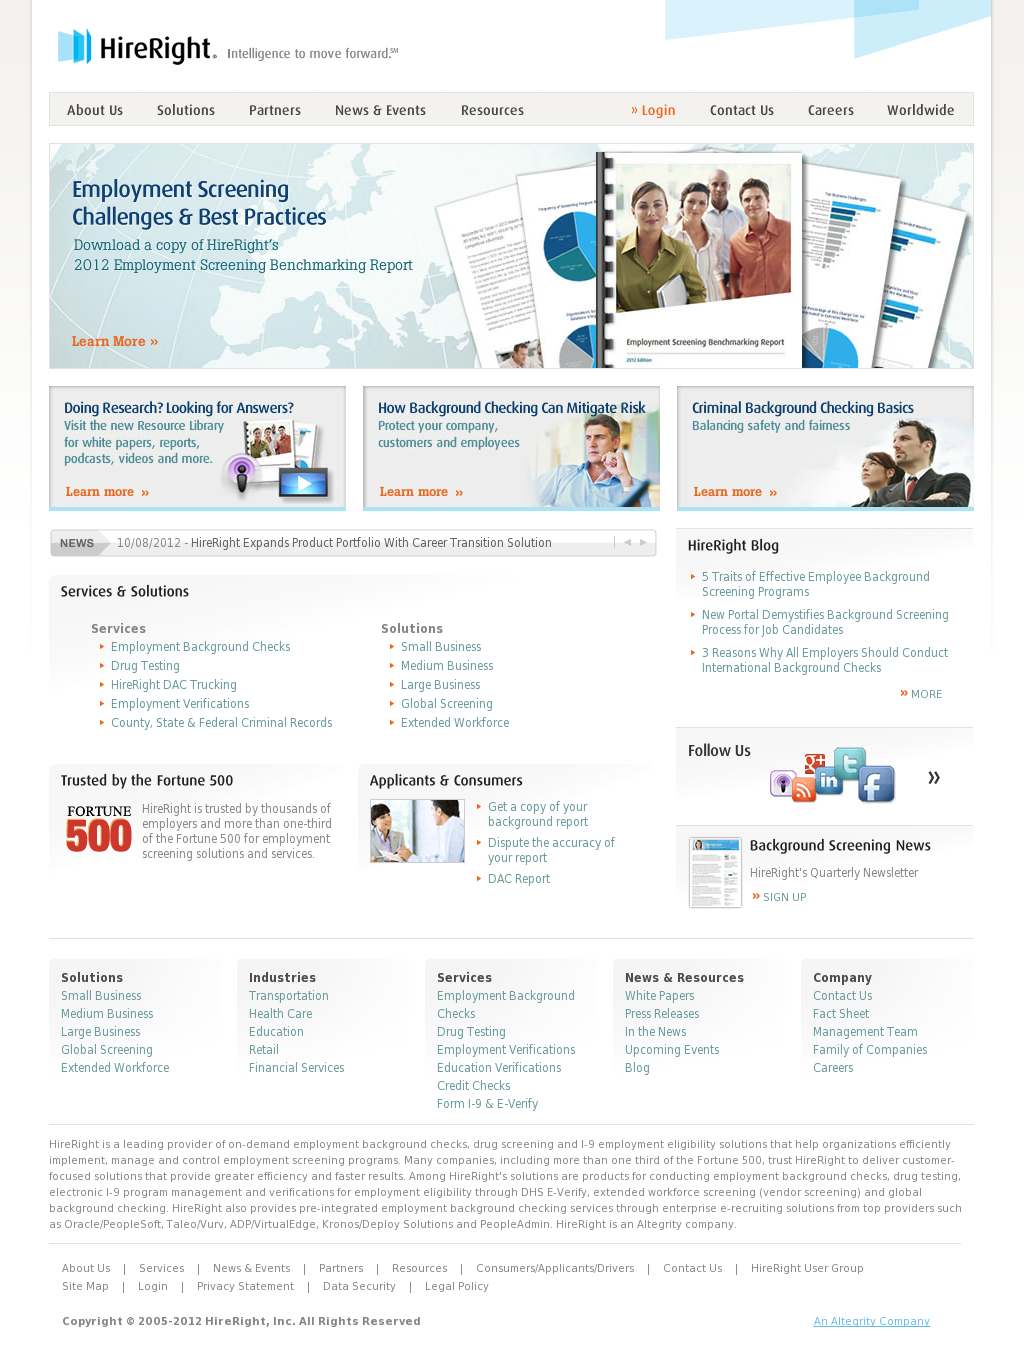 HireRight's Latest News, Blogs, Press Releases & Videos